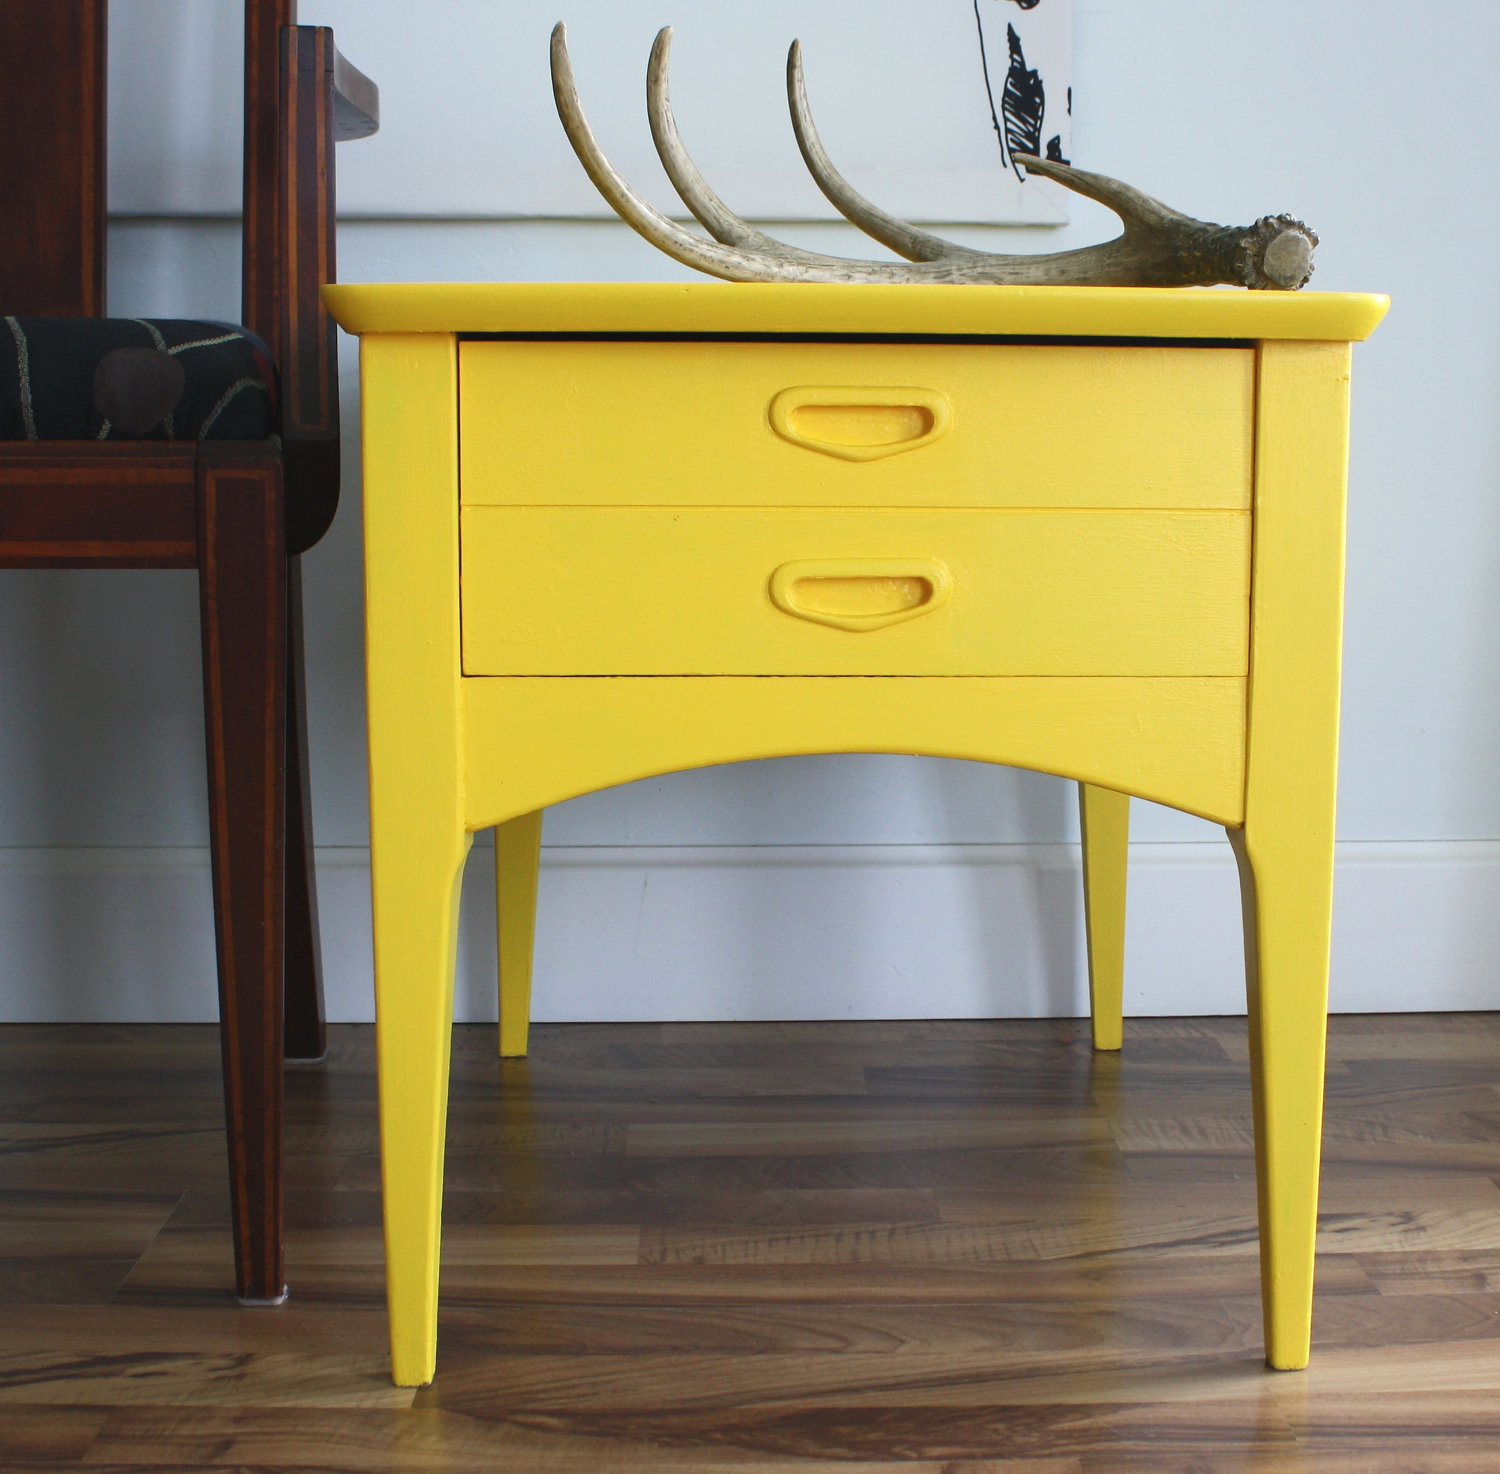 fabulous yellow accent table with target nucleus mid century modern side theturquoiseiris mustard end watt led candelabra bulbs built wine refrigerator big dog crates small drink